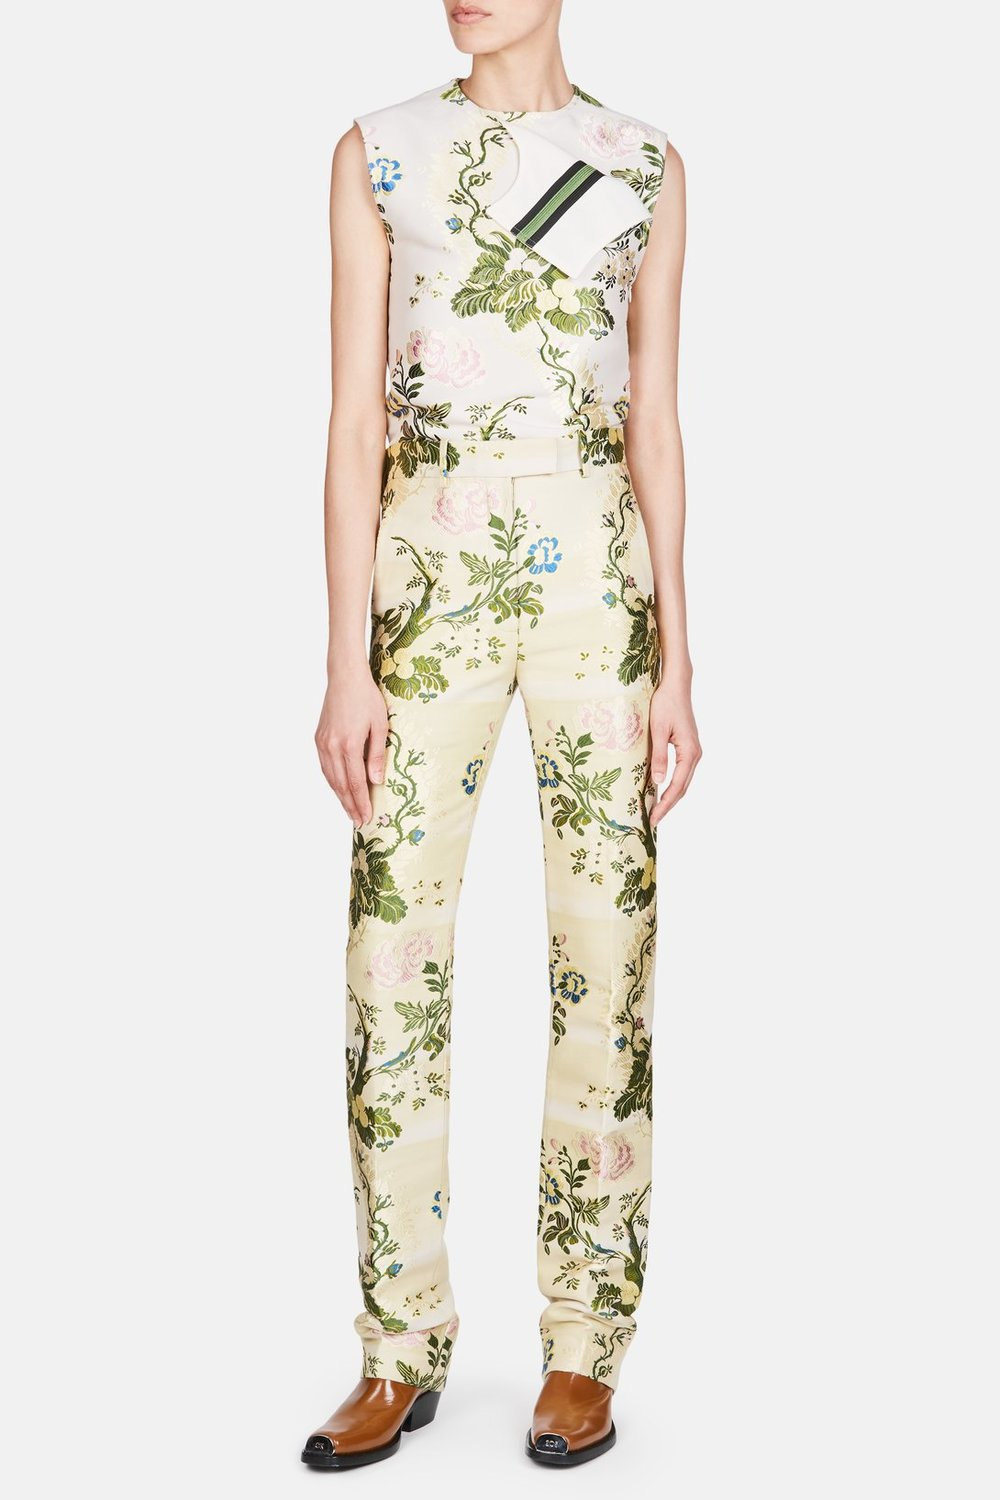 Calvin Klein Pants, Was $1,695 - Now $509